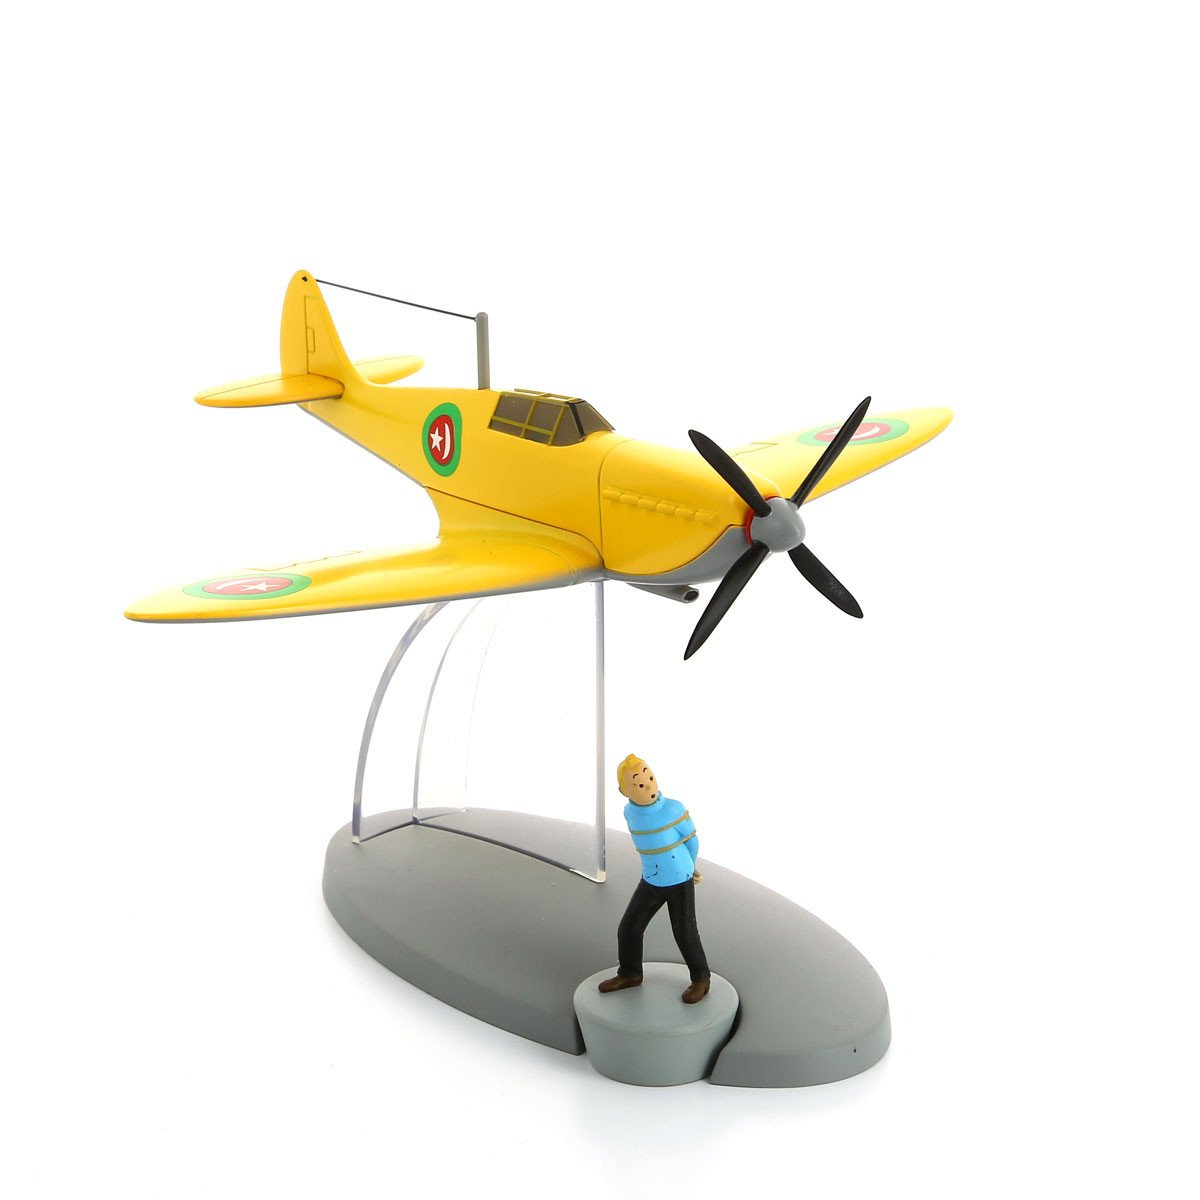 TINTIN AIRCRAFT - #29 EMIR YELLOW PLANE